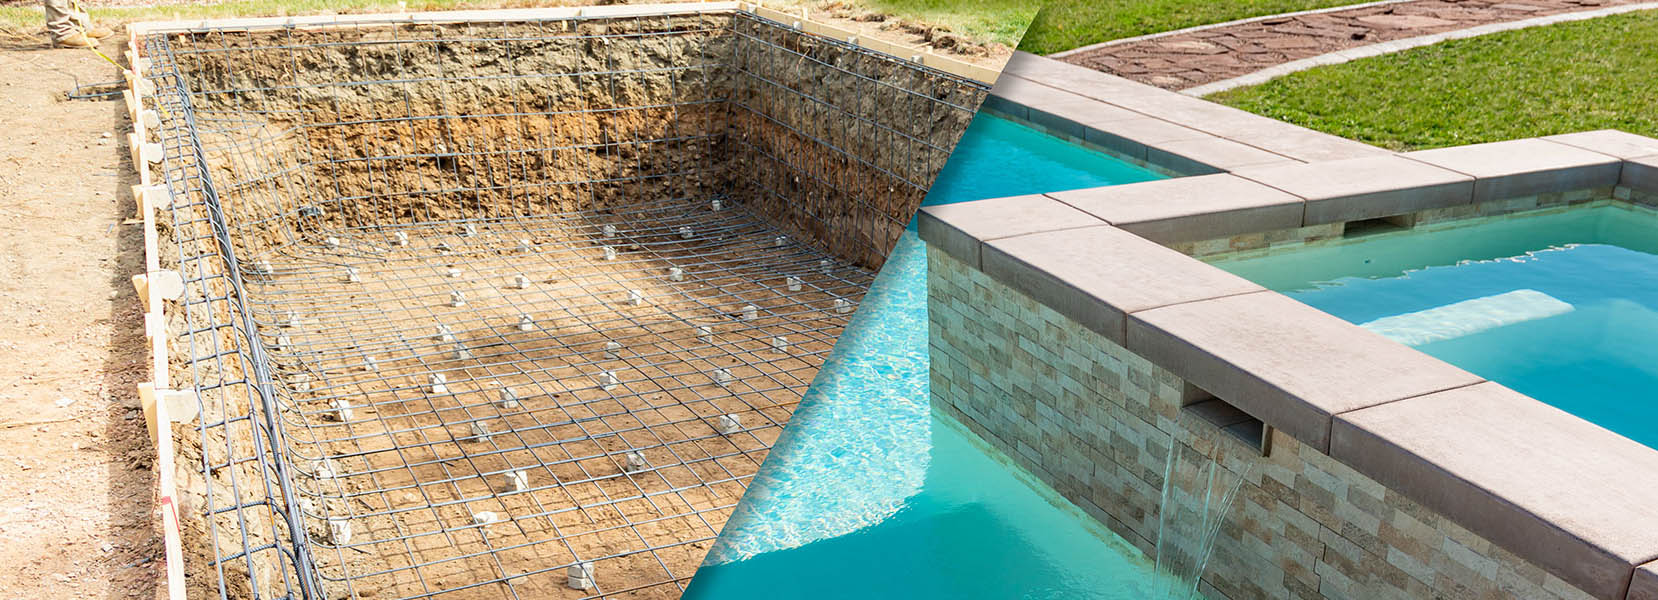 Swimming Pool Construction Before and after